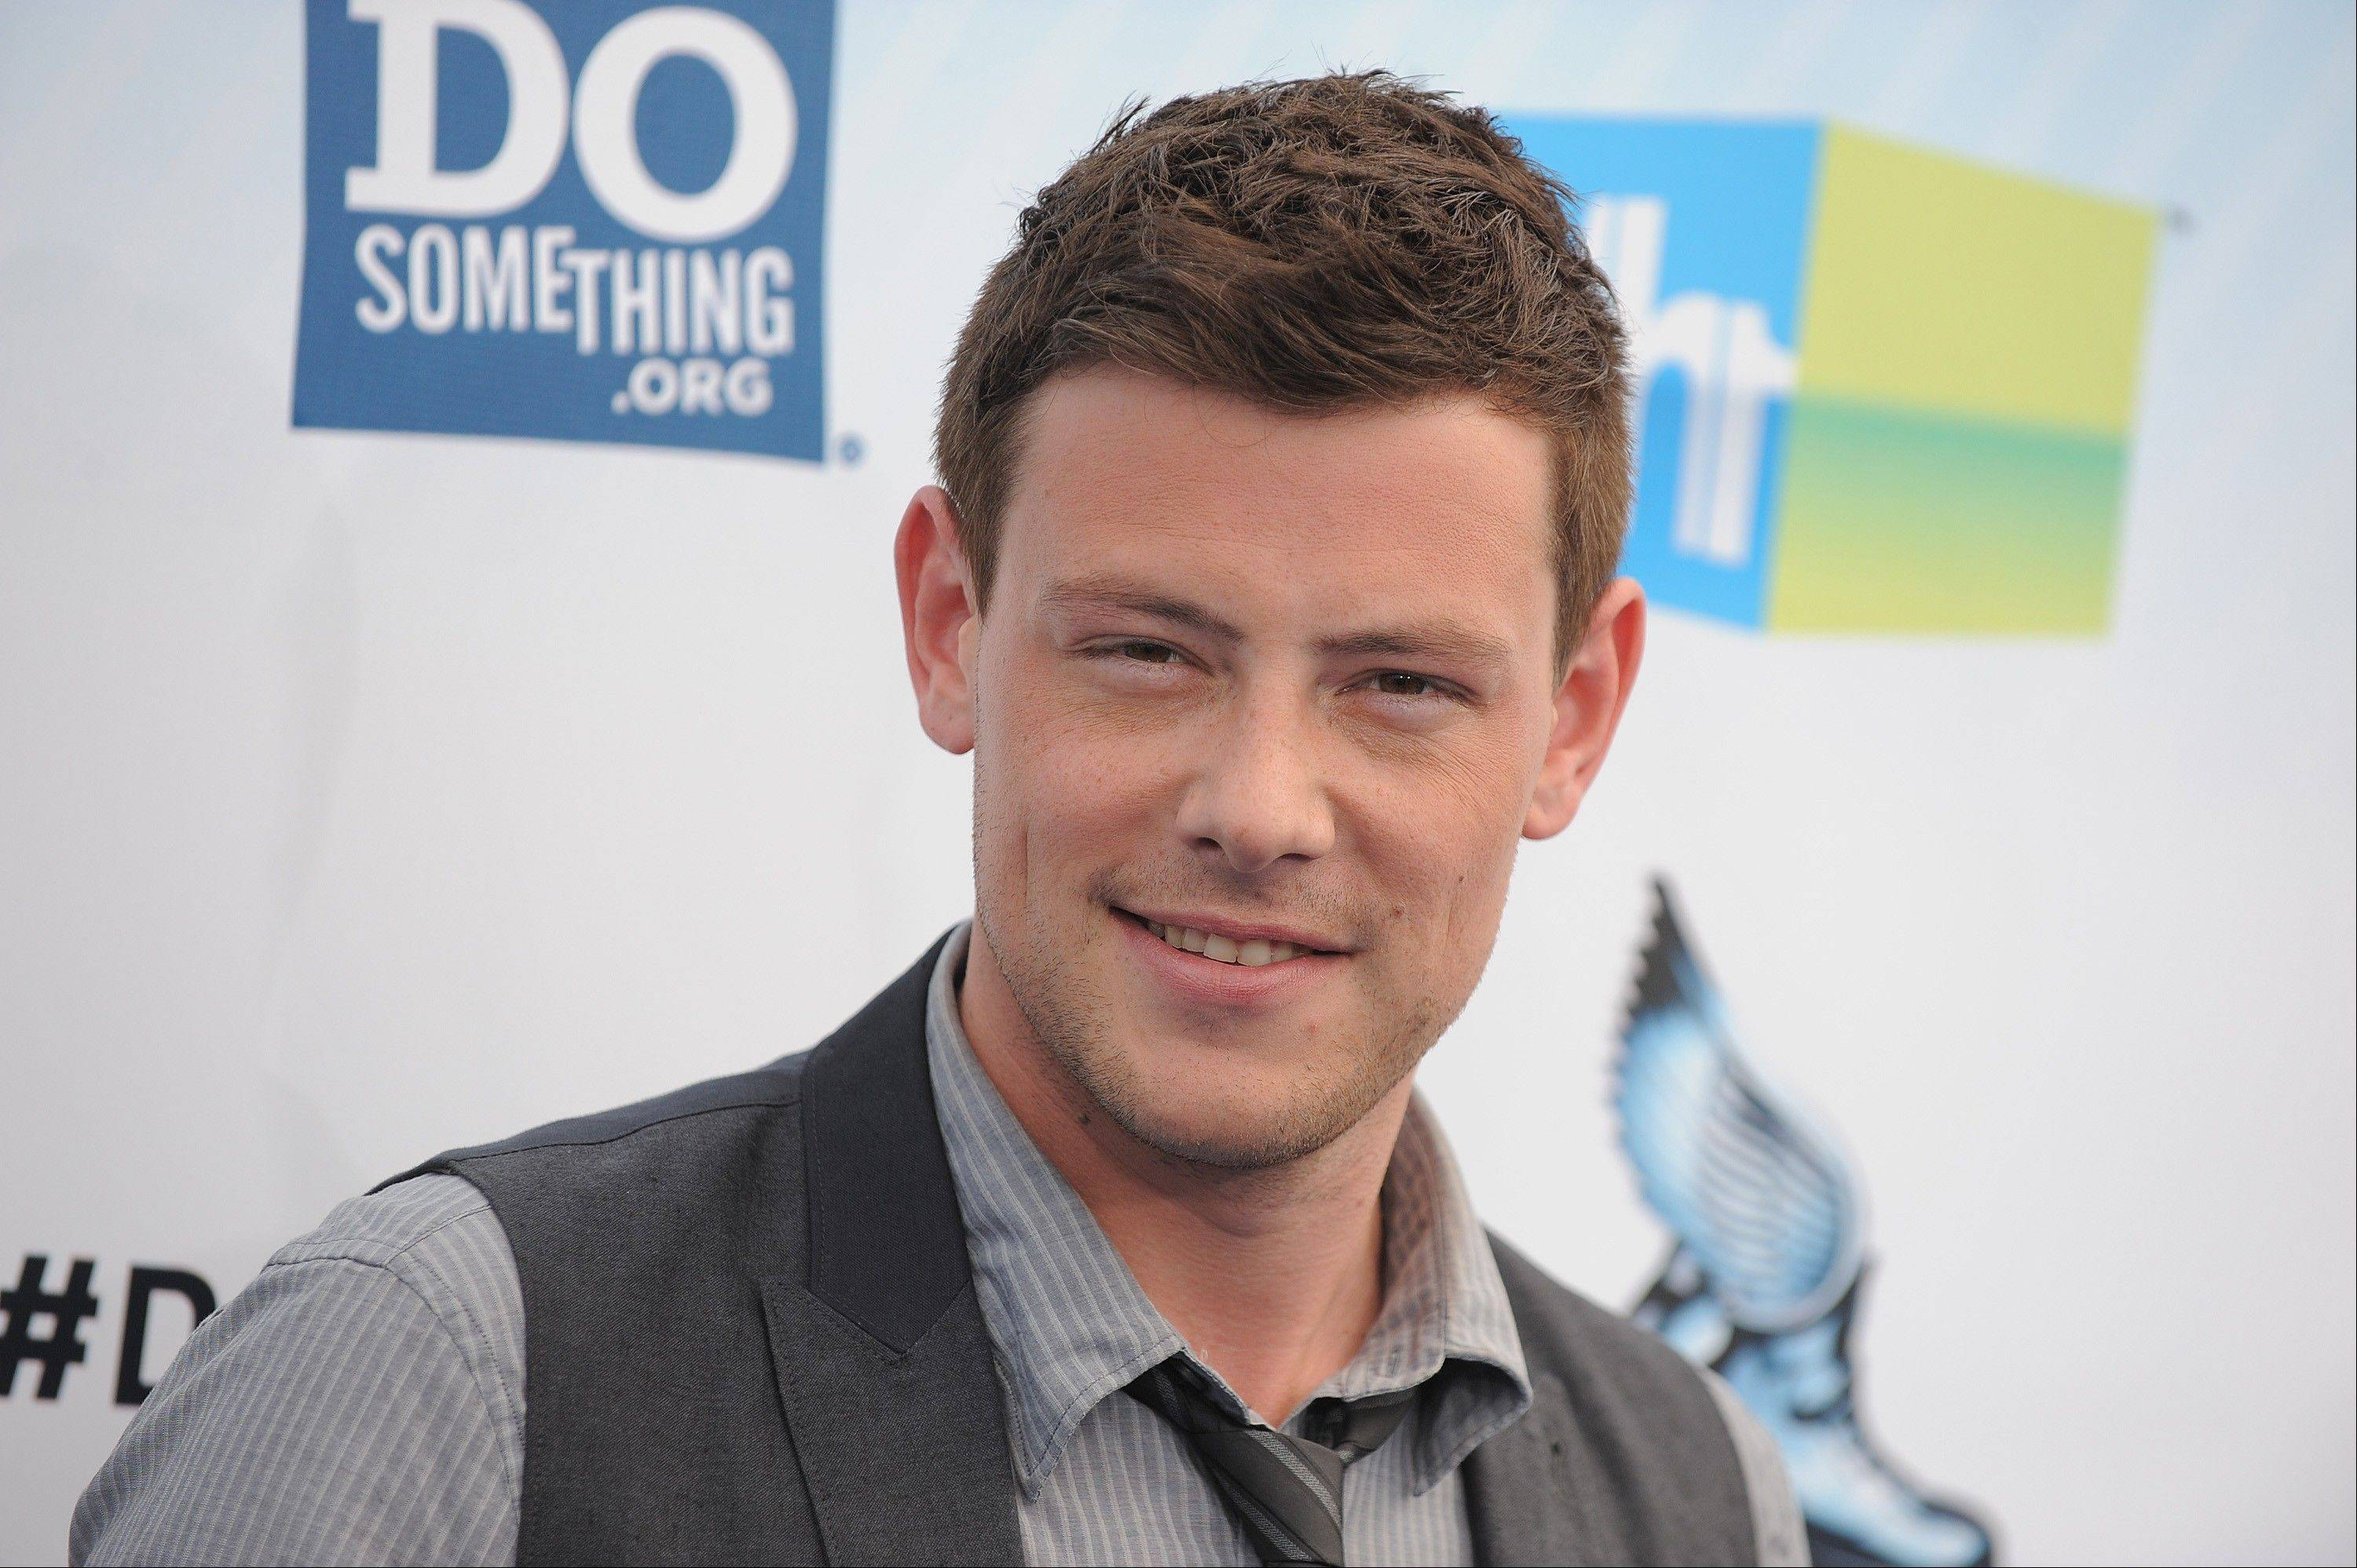 "In this 2012 file photo, ""Glee"" star Cory Monteith attends the 2012 Do Something awards in Santa Monica, Calif. Monteith, 31, was found dead in his hotel room in Vancouver on Saturday."